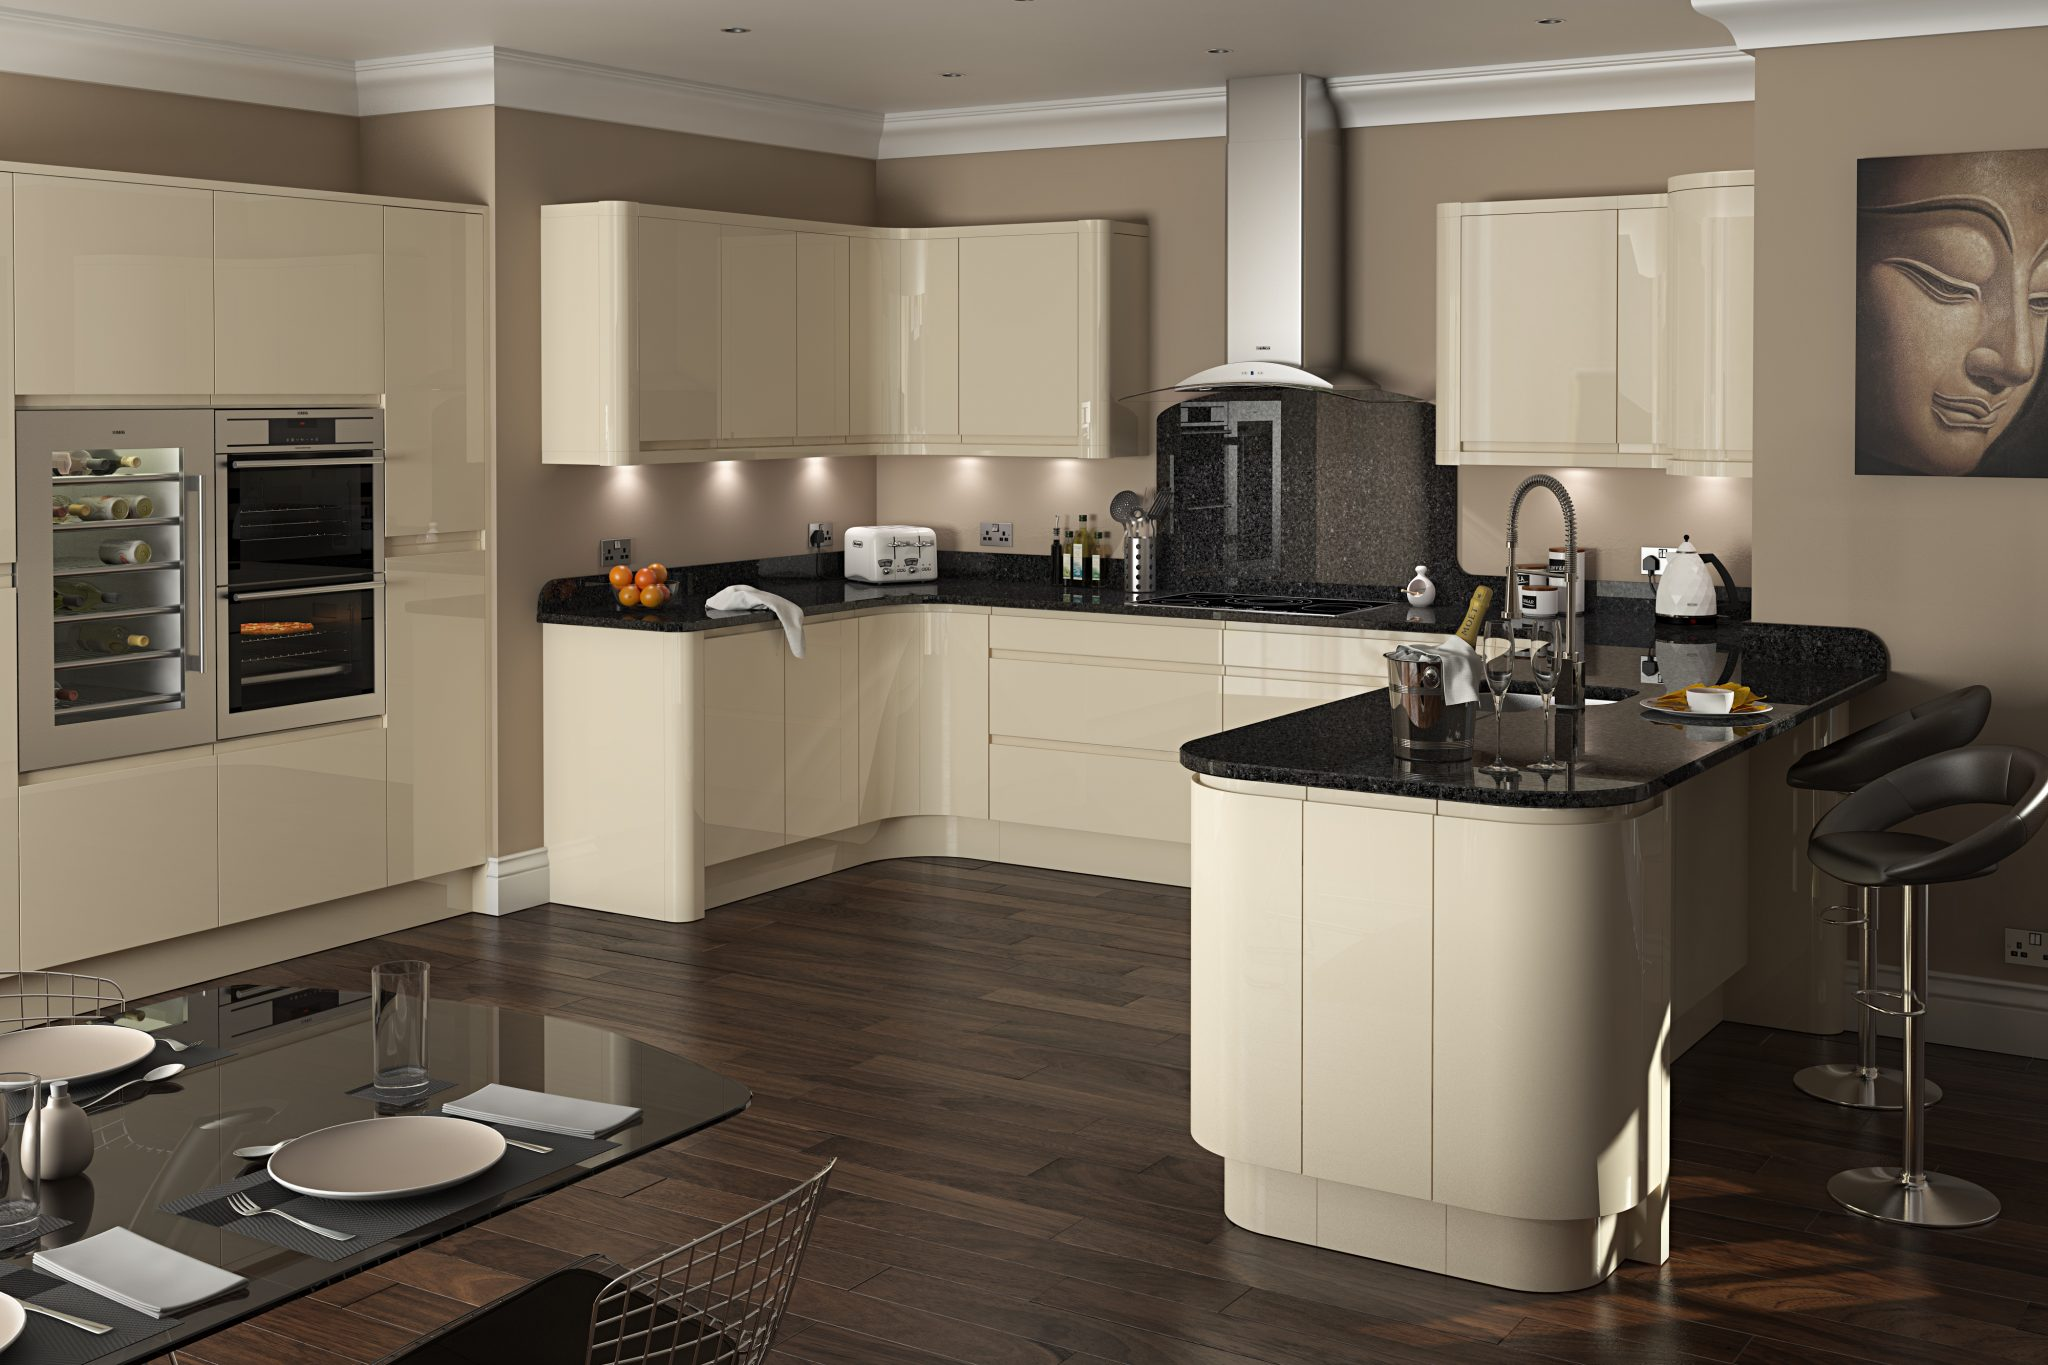 Kitchen design kitchens wirral bespoke luxury designs and ideas wirrals designer specialist - Show picture of kitchen ...